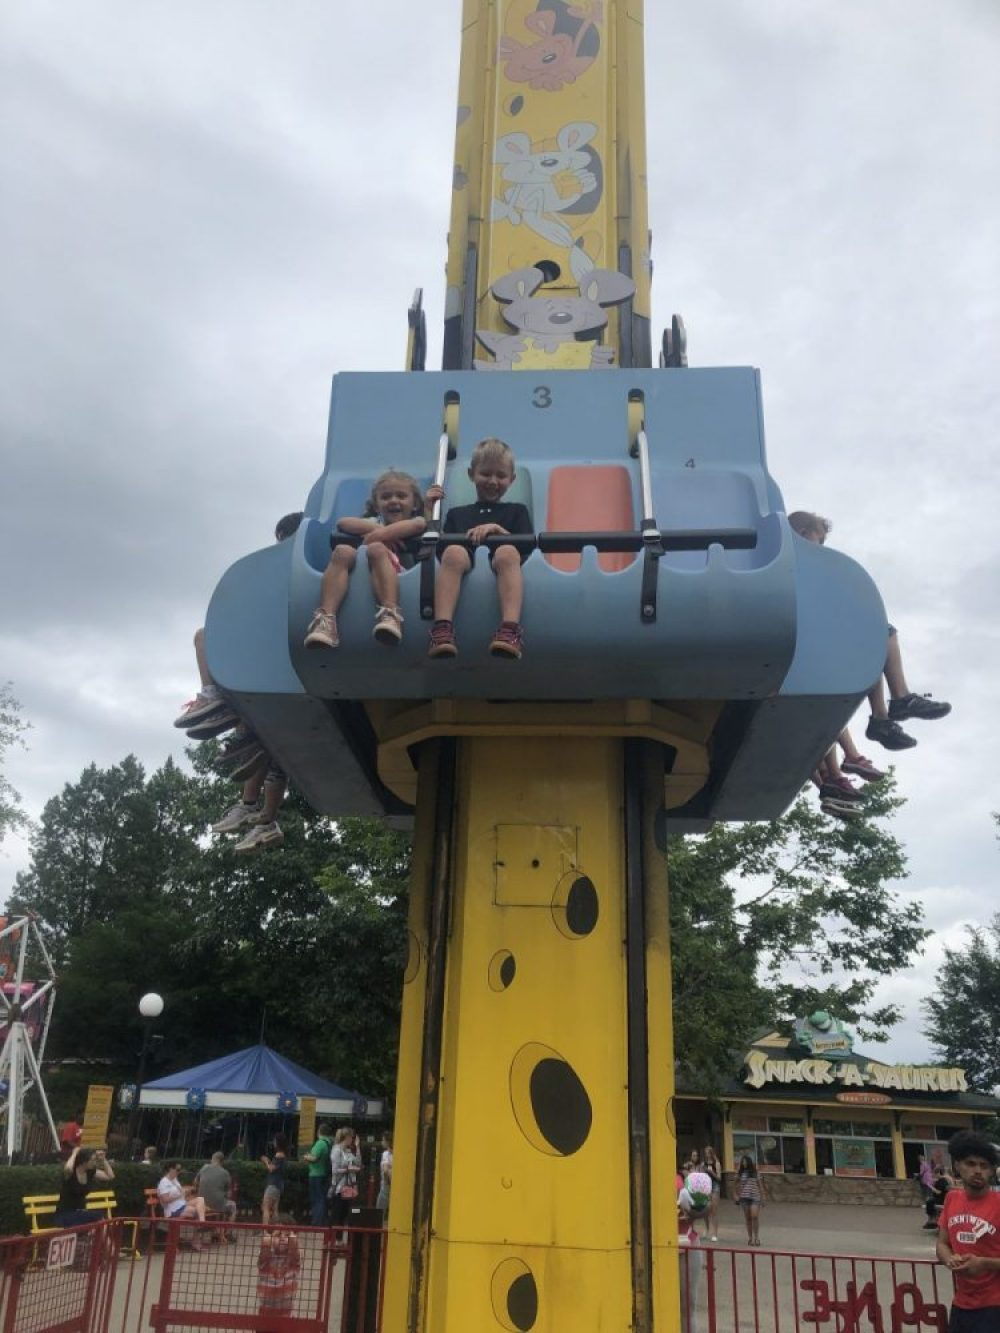 Kennywood Park And Special Discounted Tickets for My Readers! 83